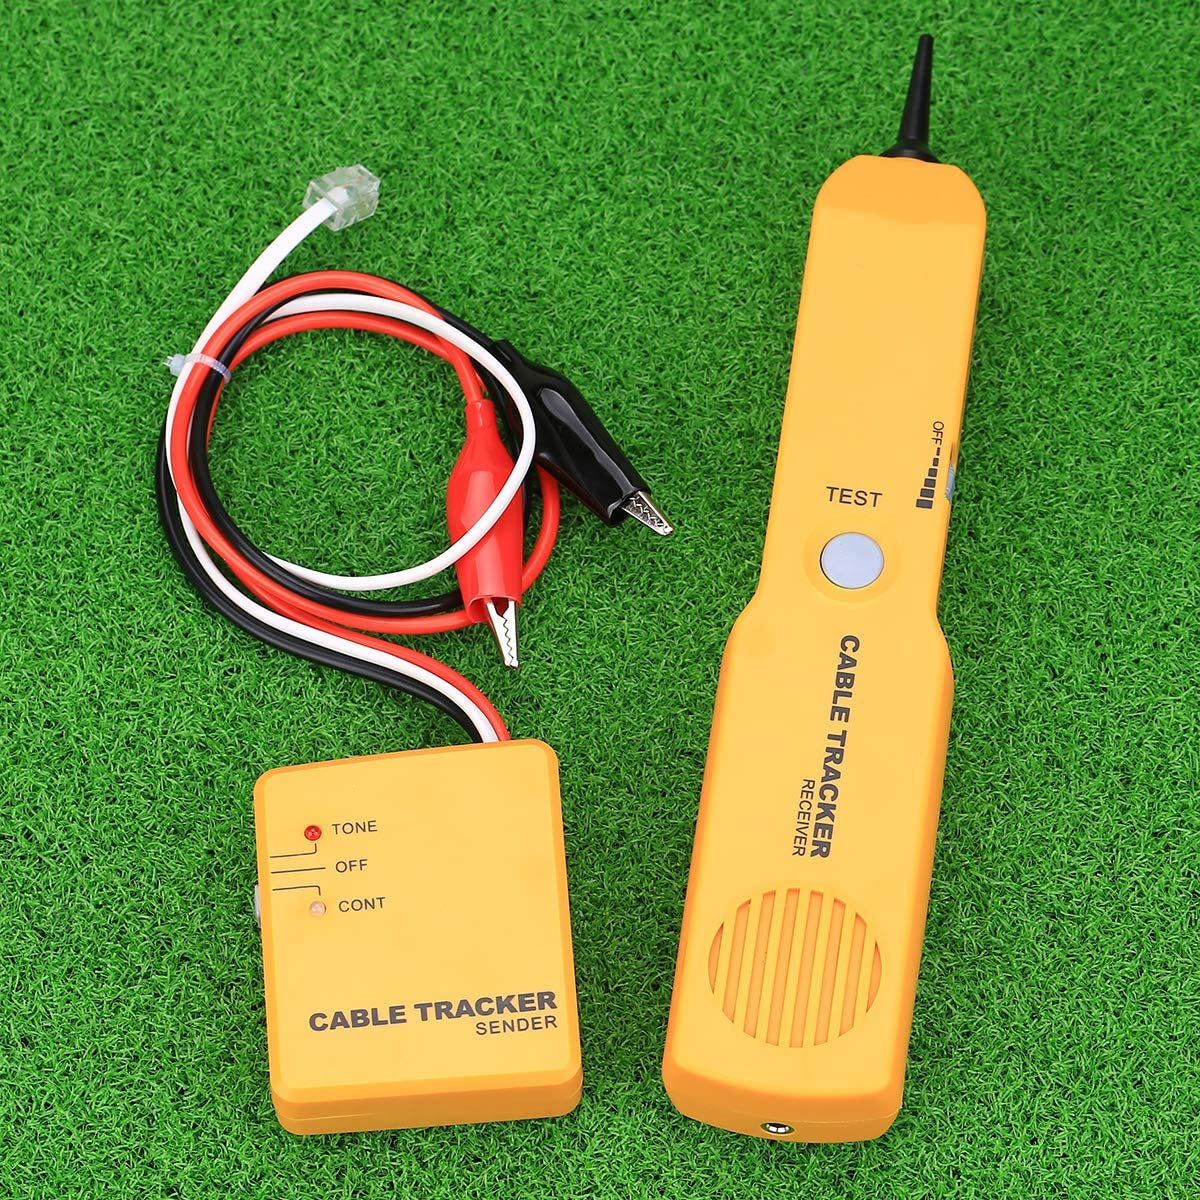 Cable Finder Tone Generator Probe Tracer RJ11 Wire Tracker Network Tester kit